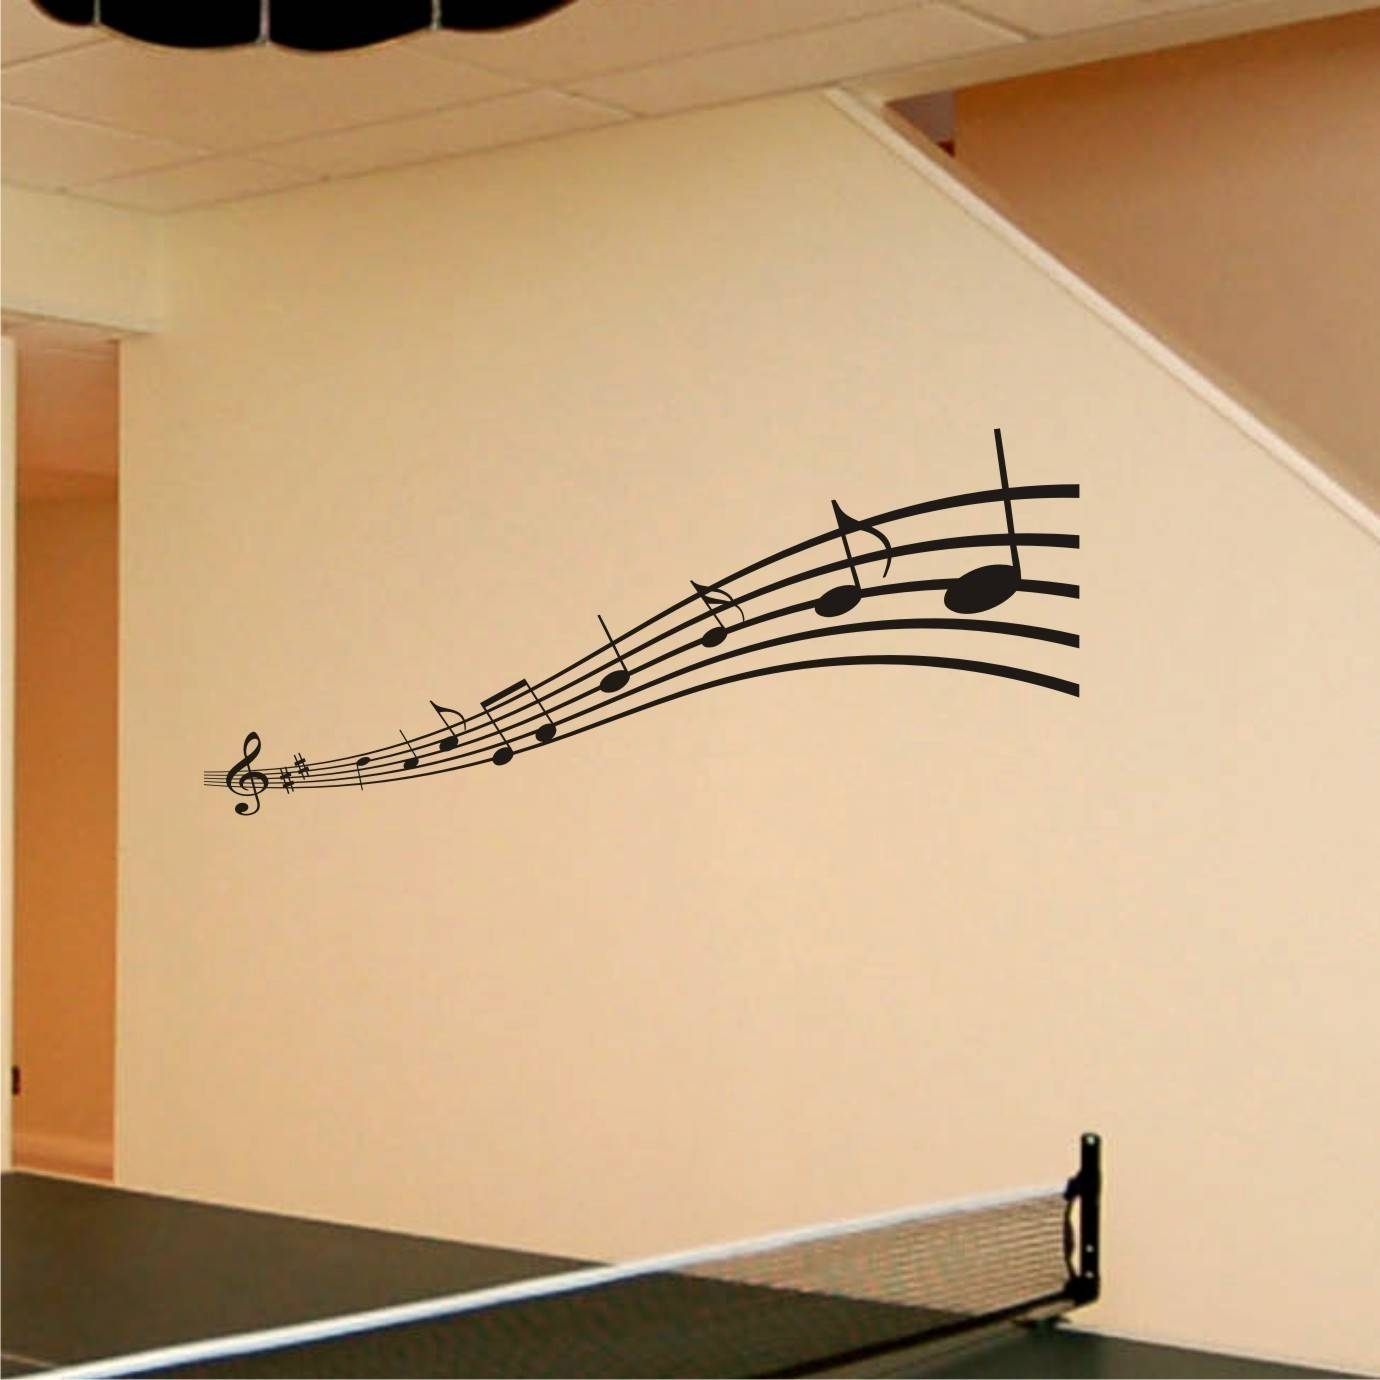 Mesmerizing 80+ Musical Wall Art Design Inspiration Of Best 25+ Regarding Recent Music Theme Wall Art (View 16 of 30)